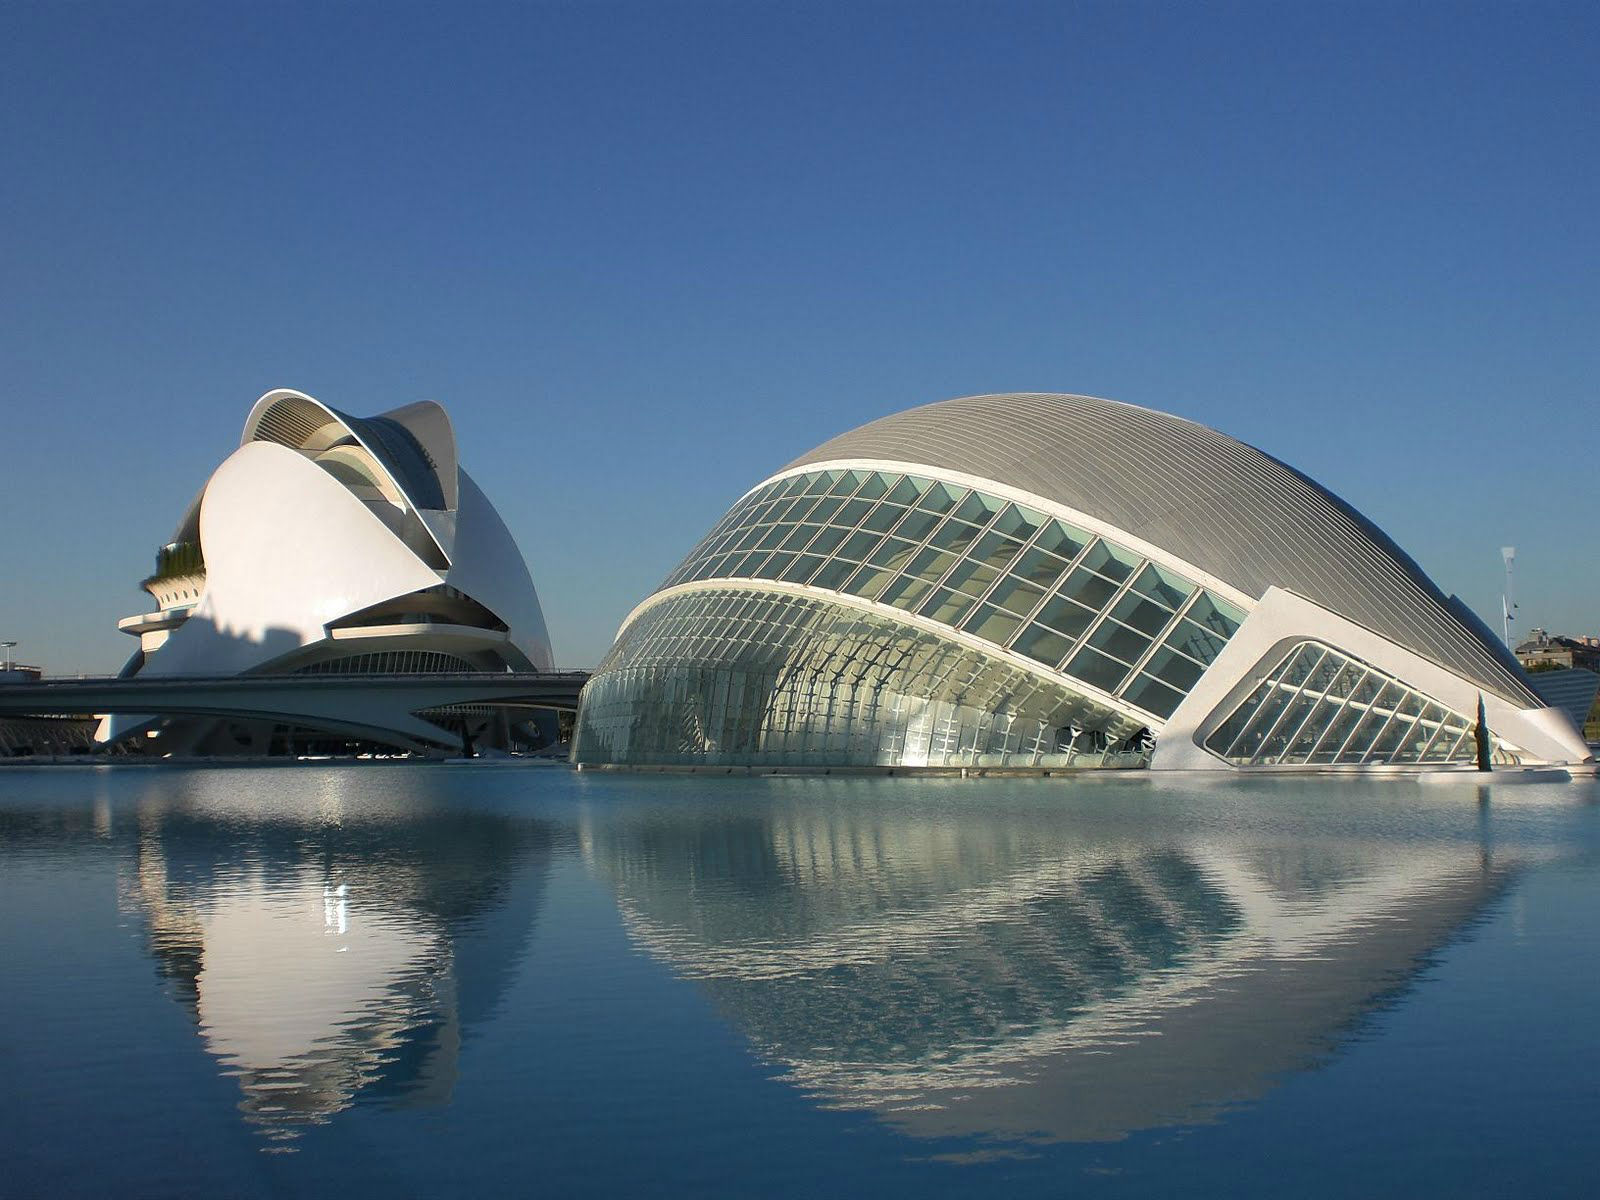 City of Arts and Sciences, Valencia - Architect, Santiago Calatravaphoto: Arch2o.com